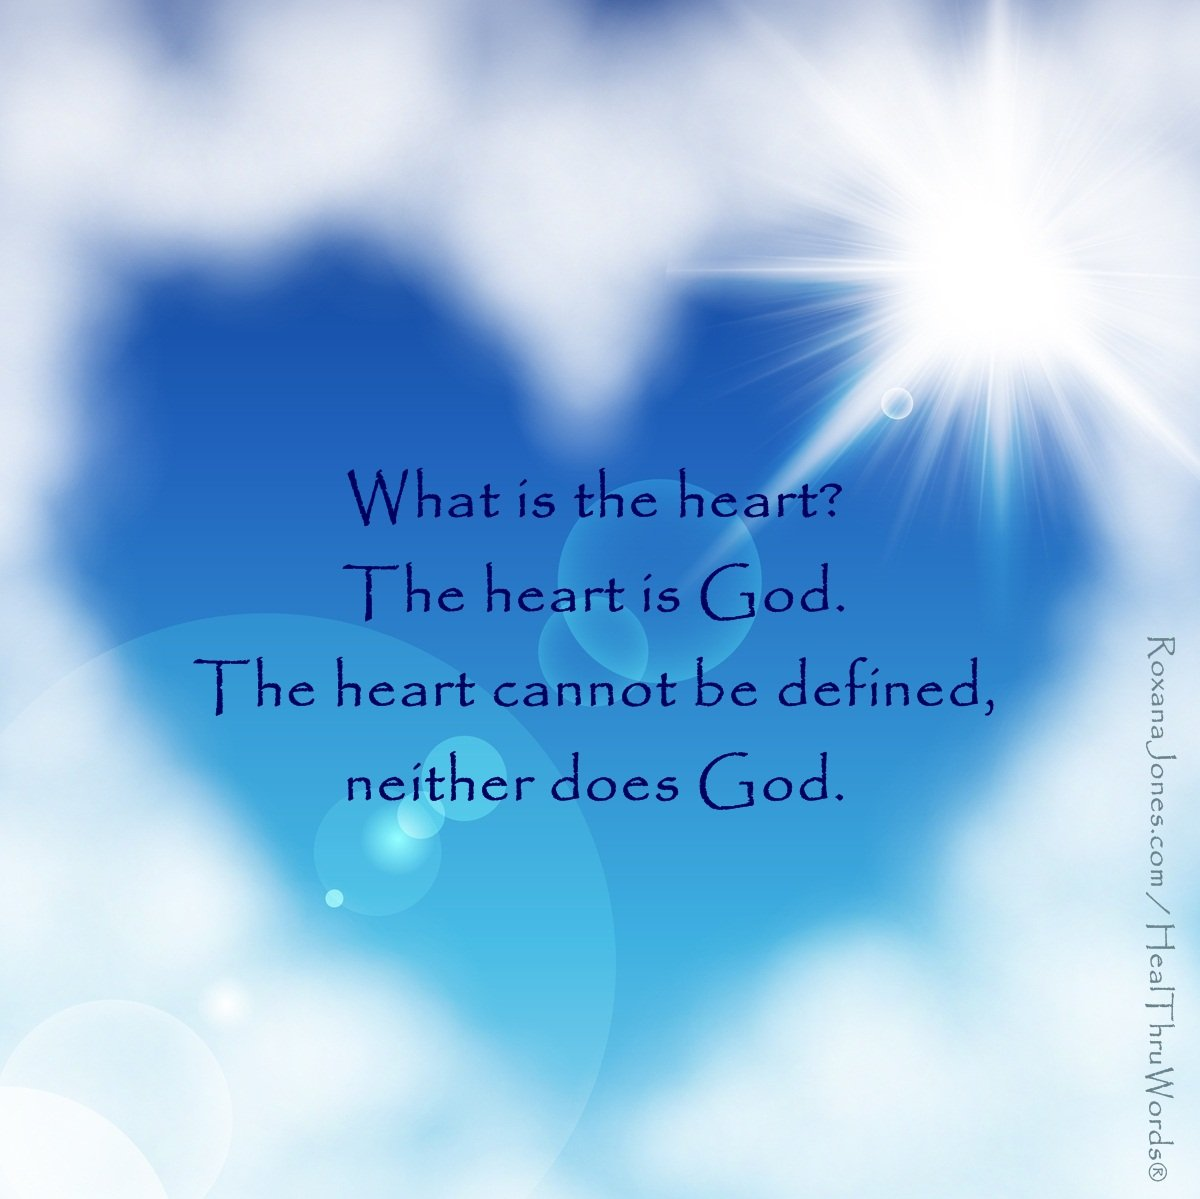 Inspirational Image: The Heart is God